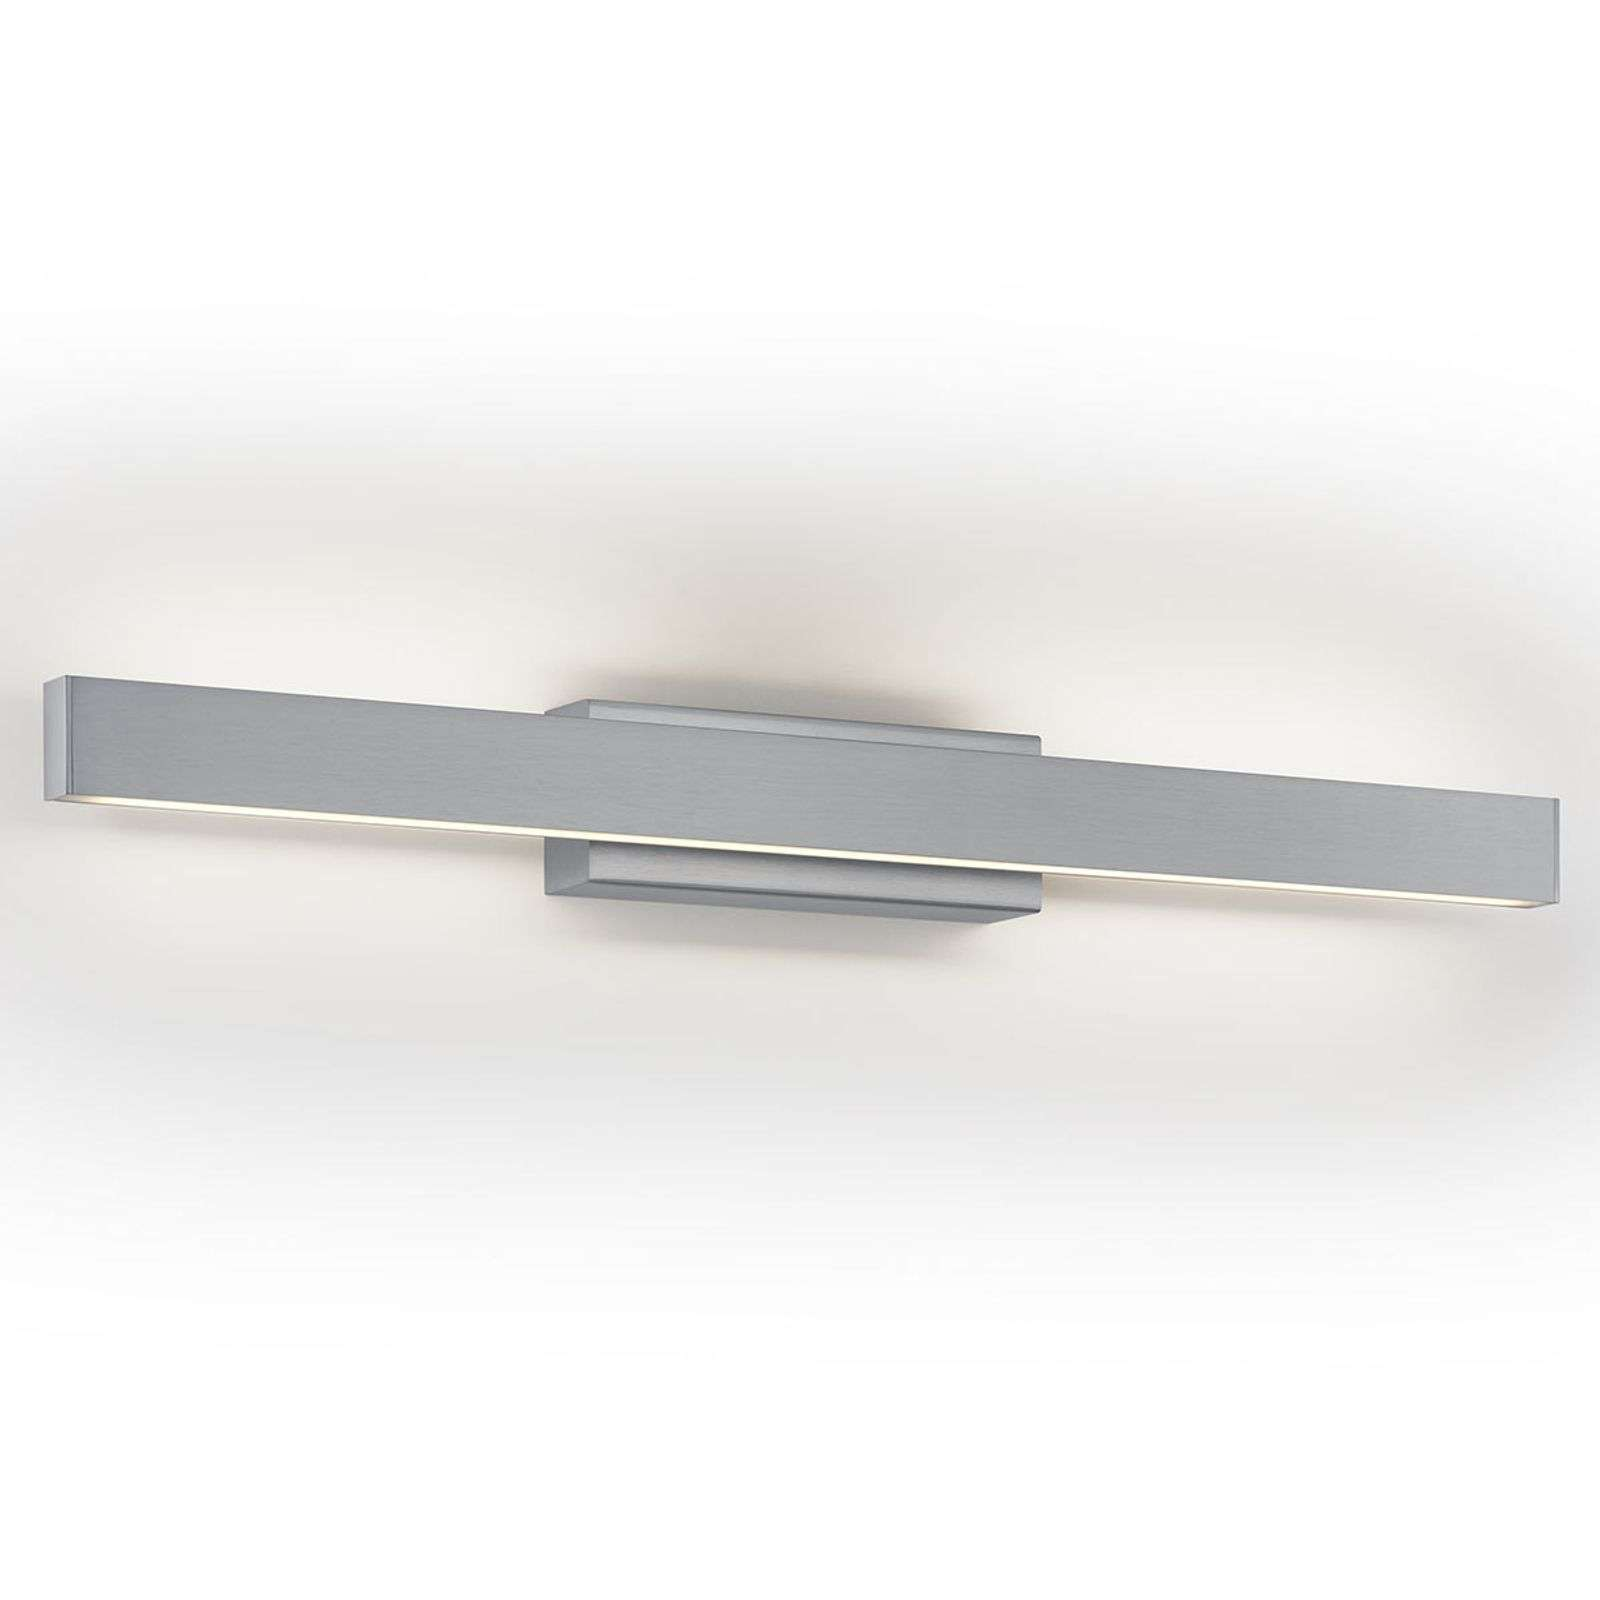 Applique LED Pia bicolore, dimmable